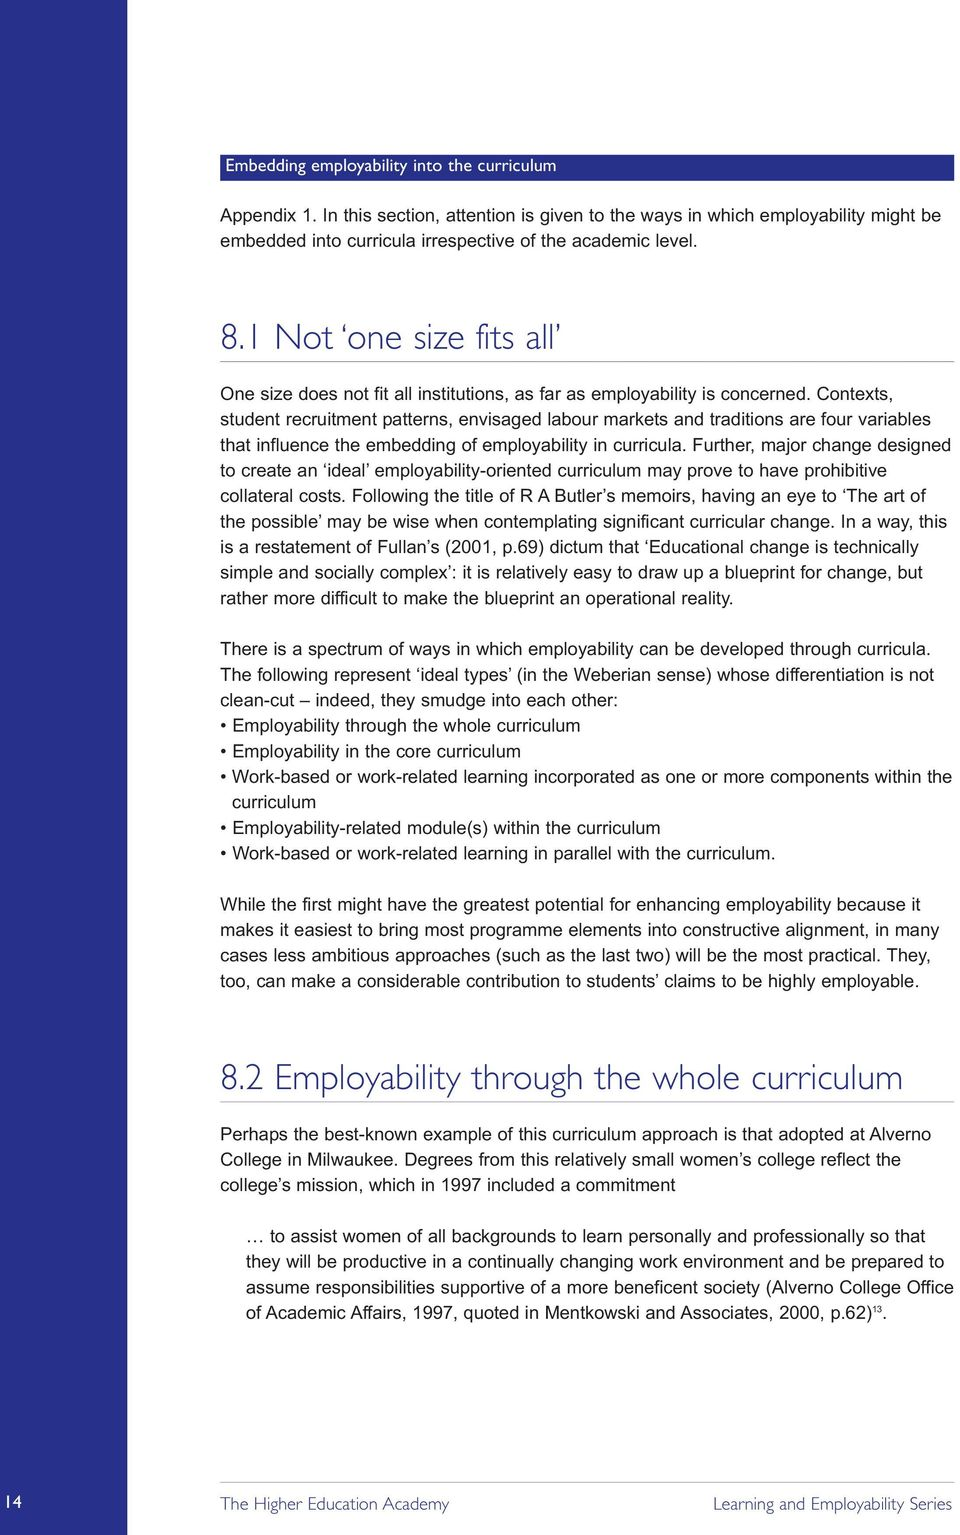 Contexts, student recruitment patterns, envisaged labour markets and traditions are four variables that influence the embedding of employability in curricula.